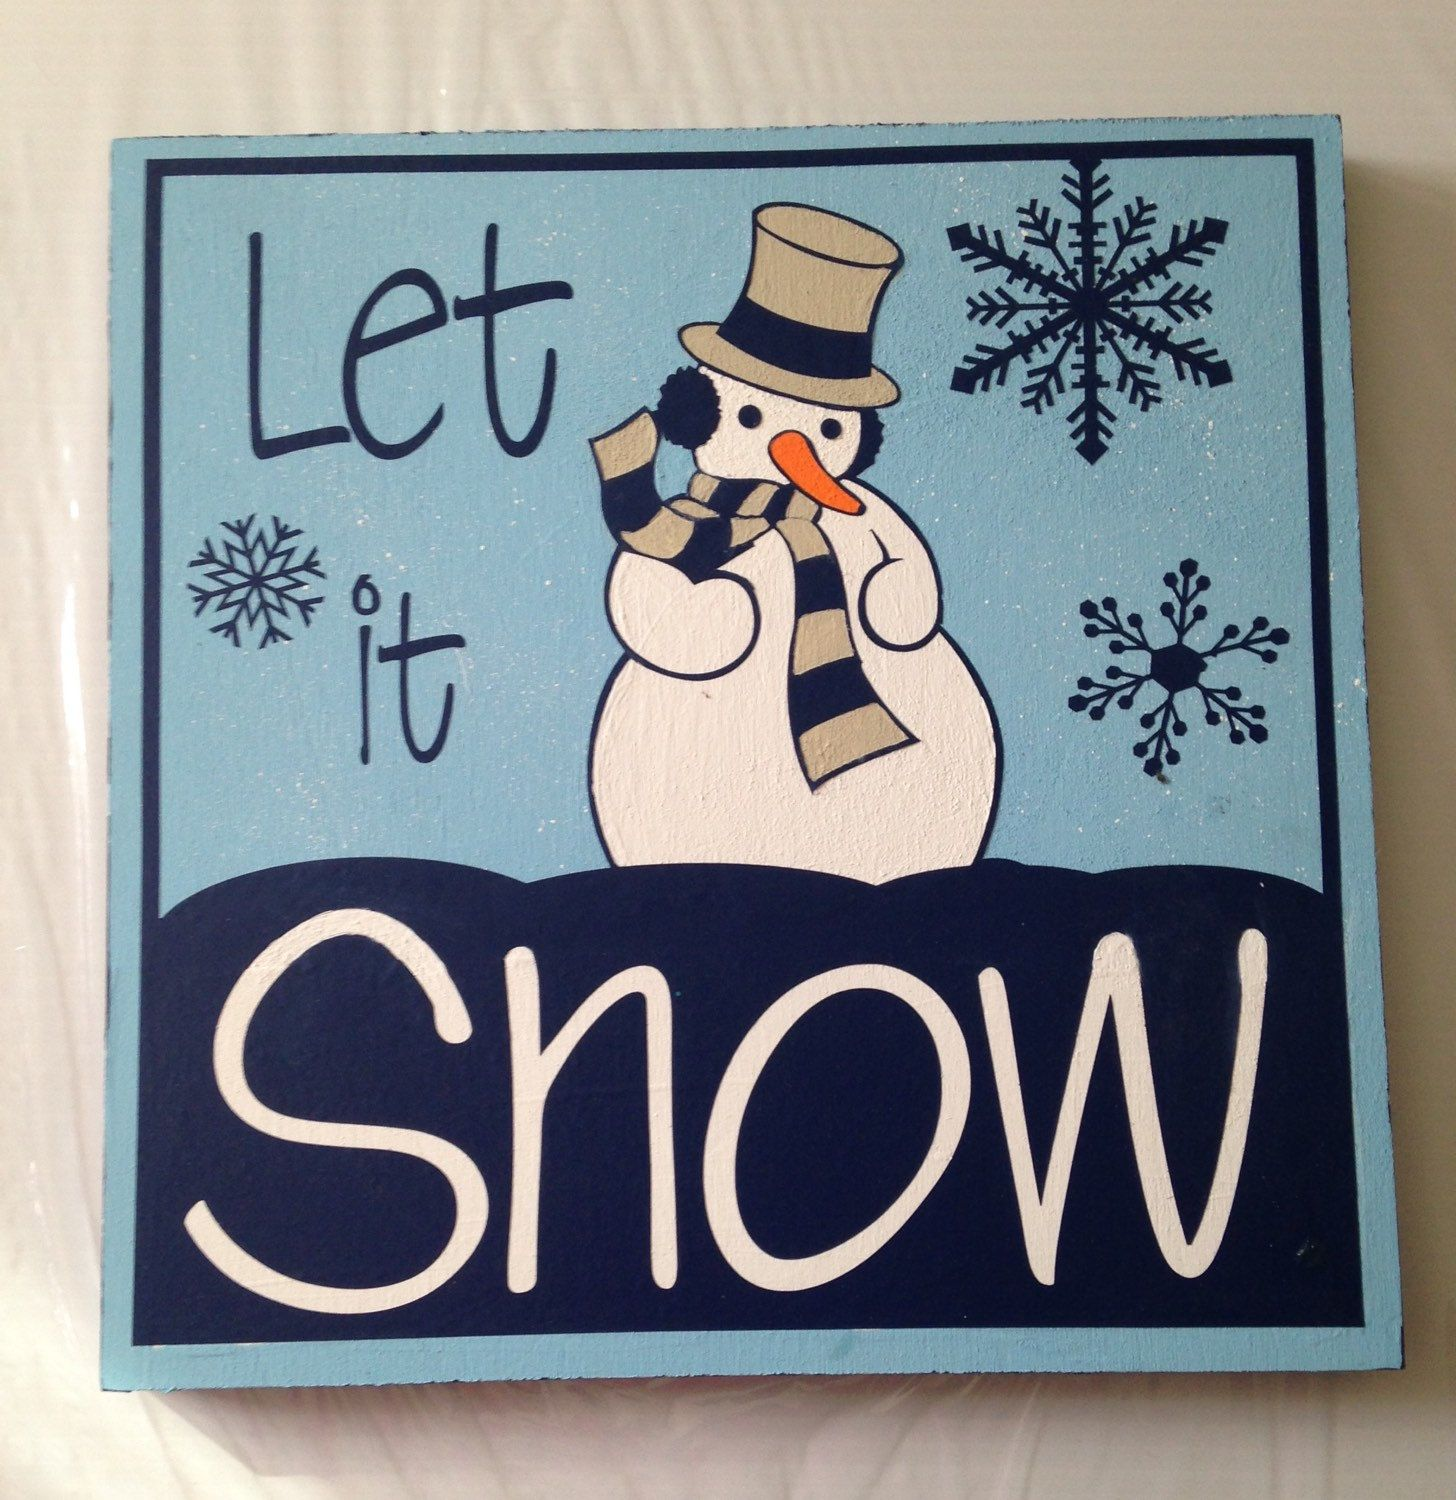 Let It Snow wooden plaque by PartyGirlArtwork on Etsy